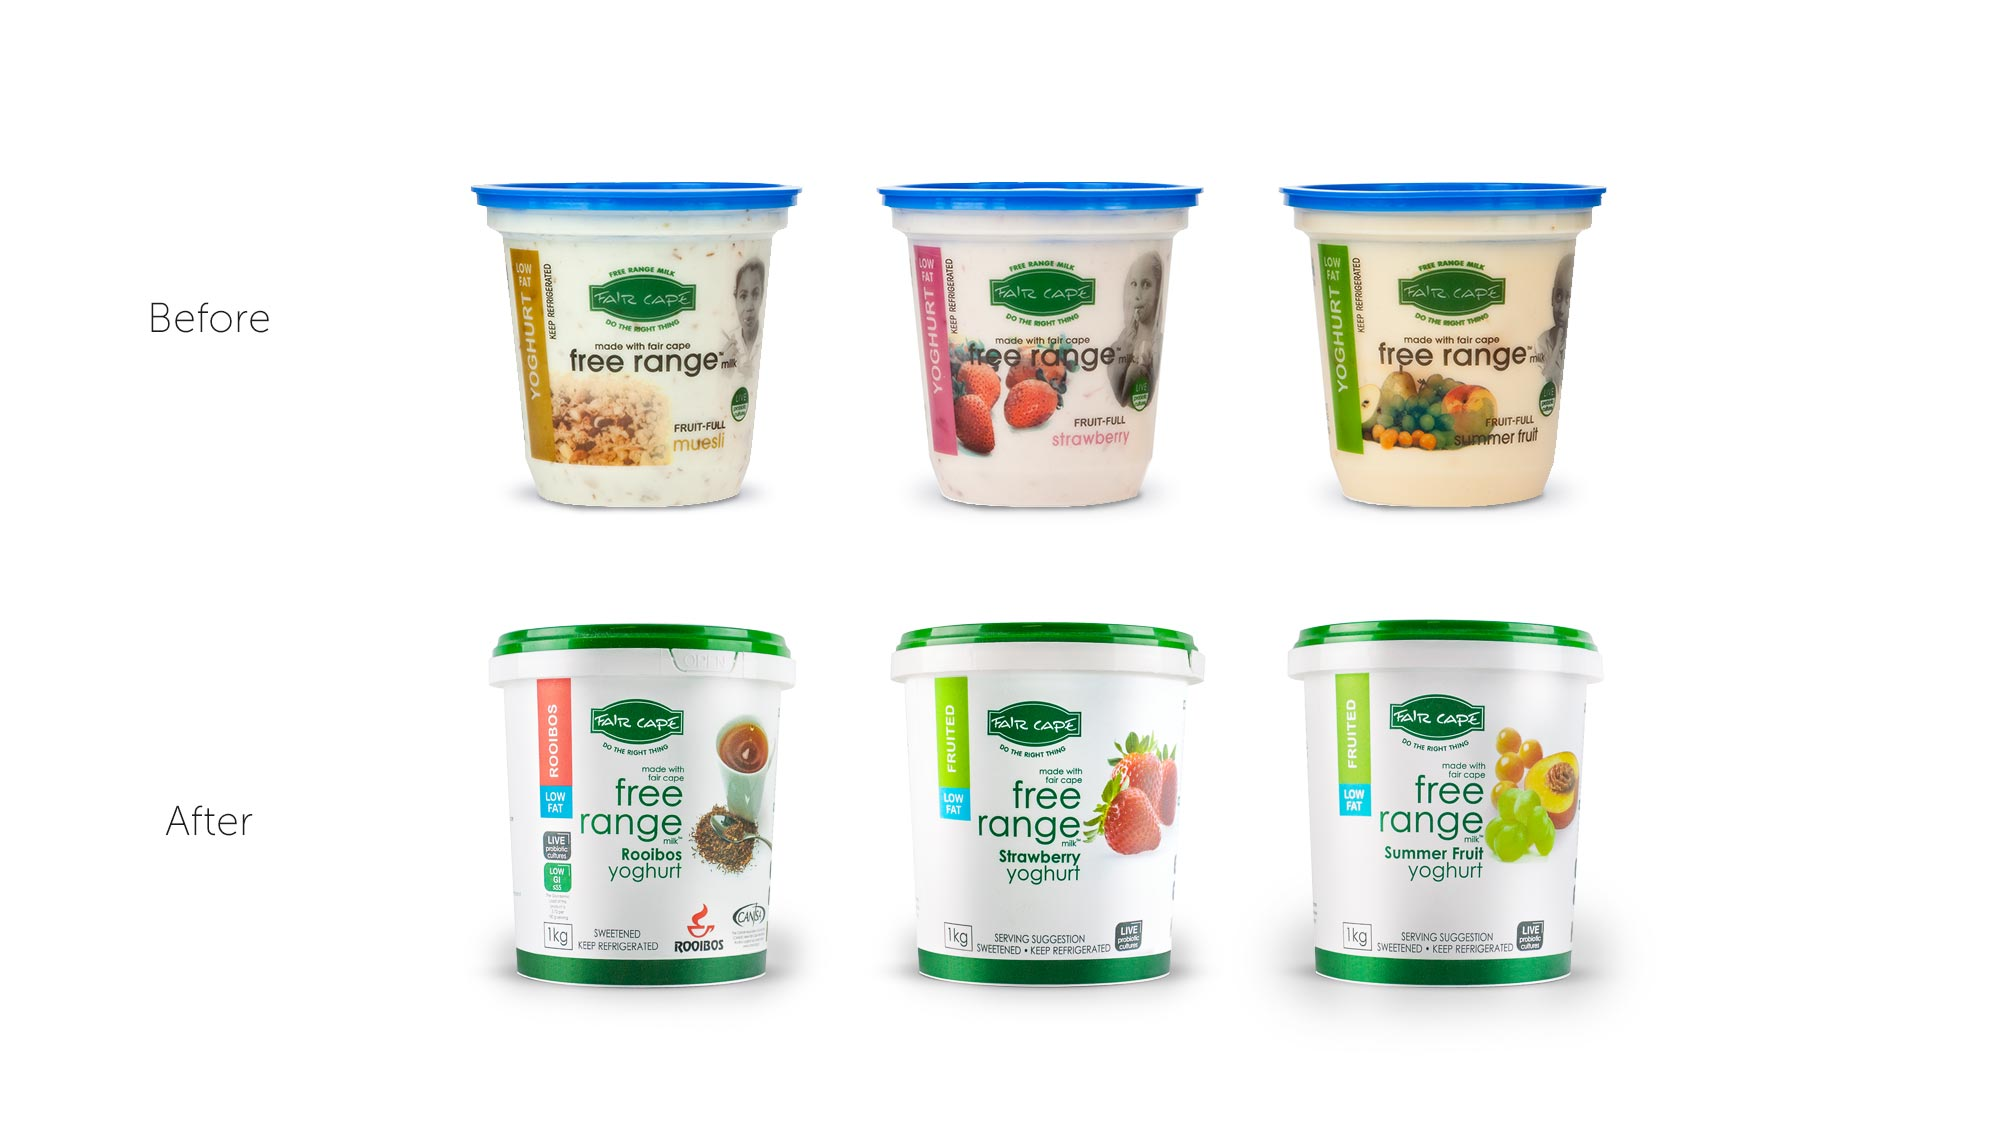 Fair Cape Yoghurt Packaging Design Before and After